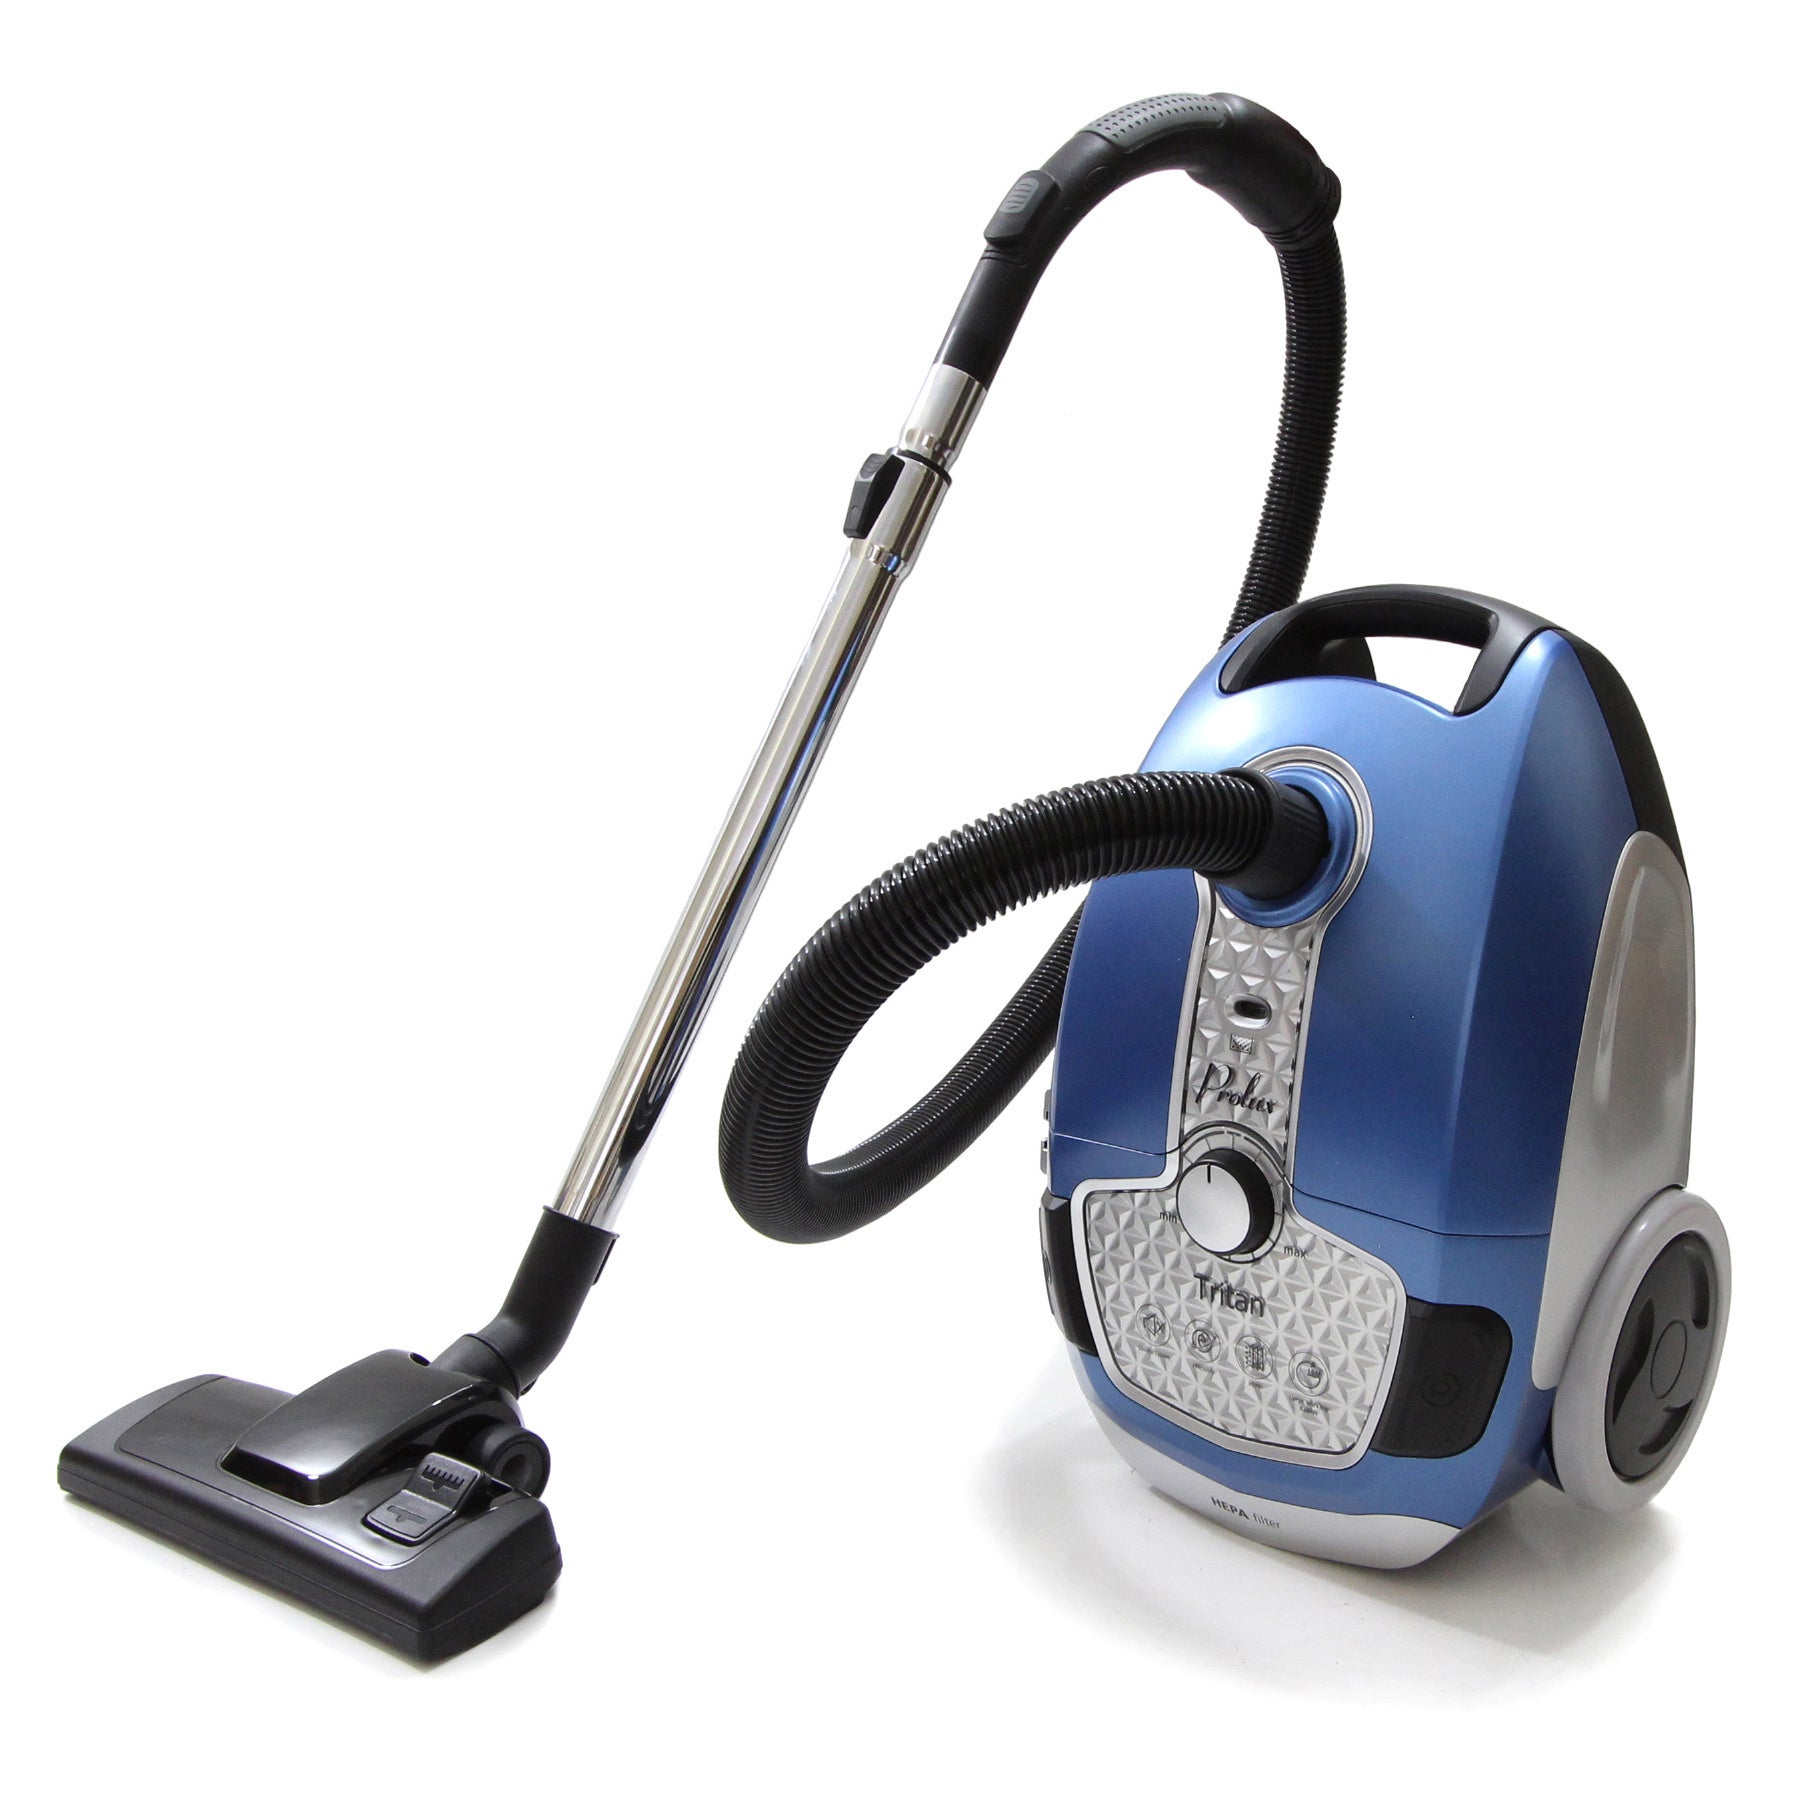 vacuum fixed nilfiskcfm and nozzle etc products industrial cleaner floor